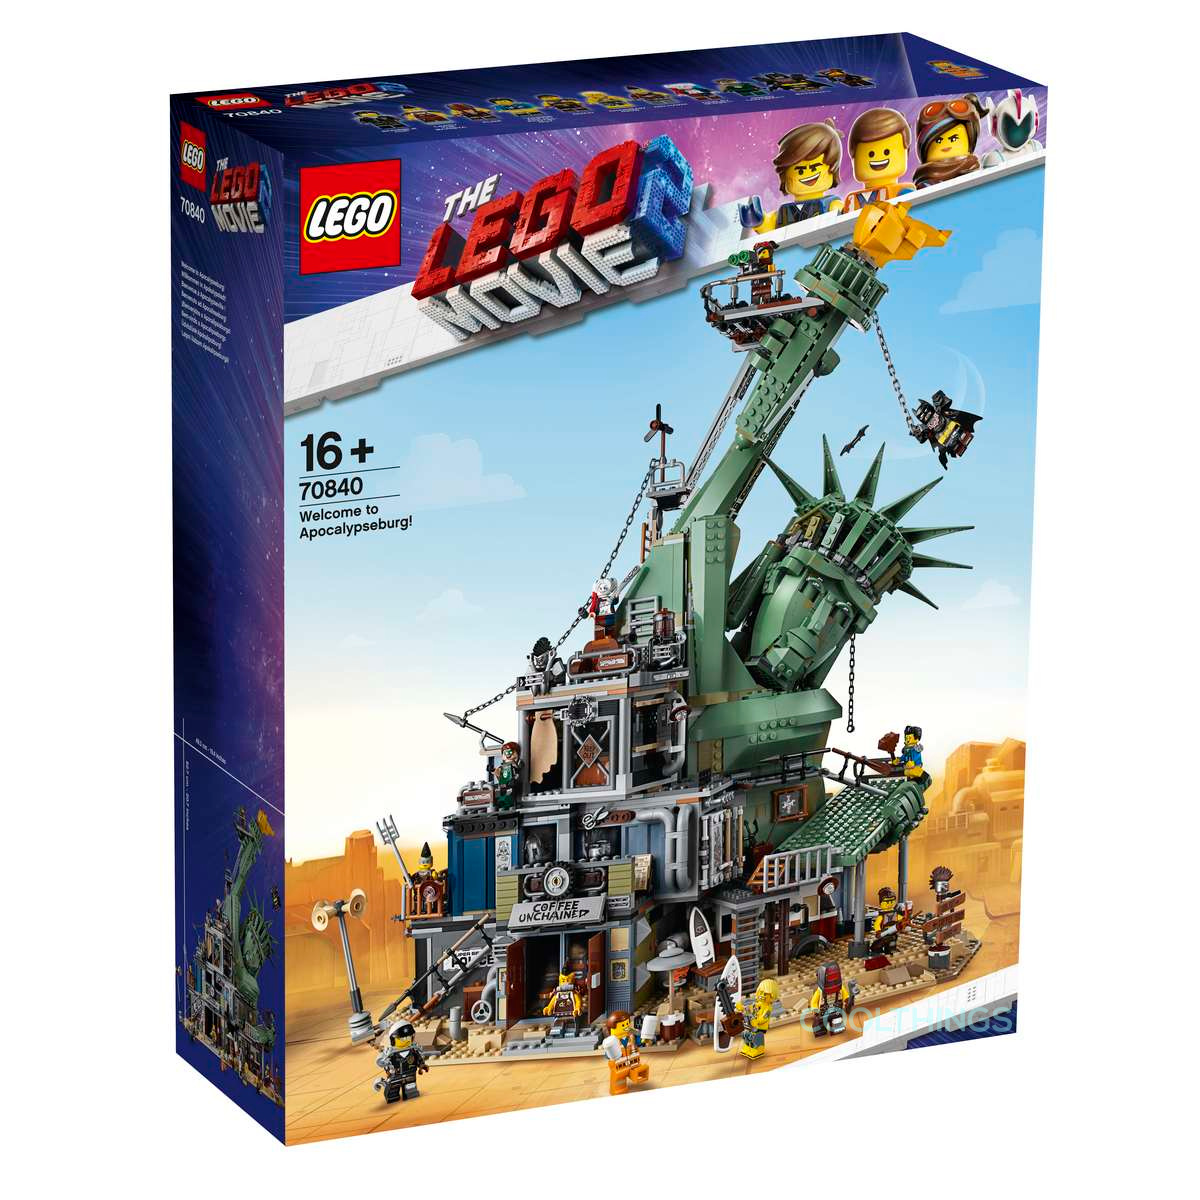 lego-movie-2-set-70840-welcome-to-apocalypseburg-box